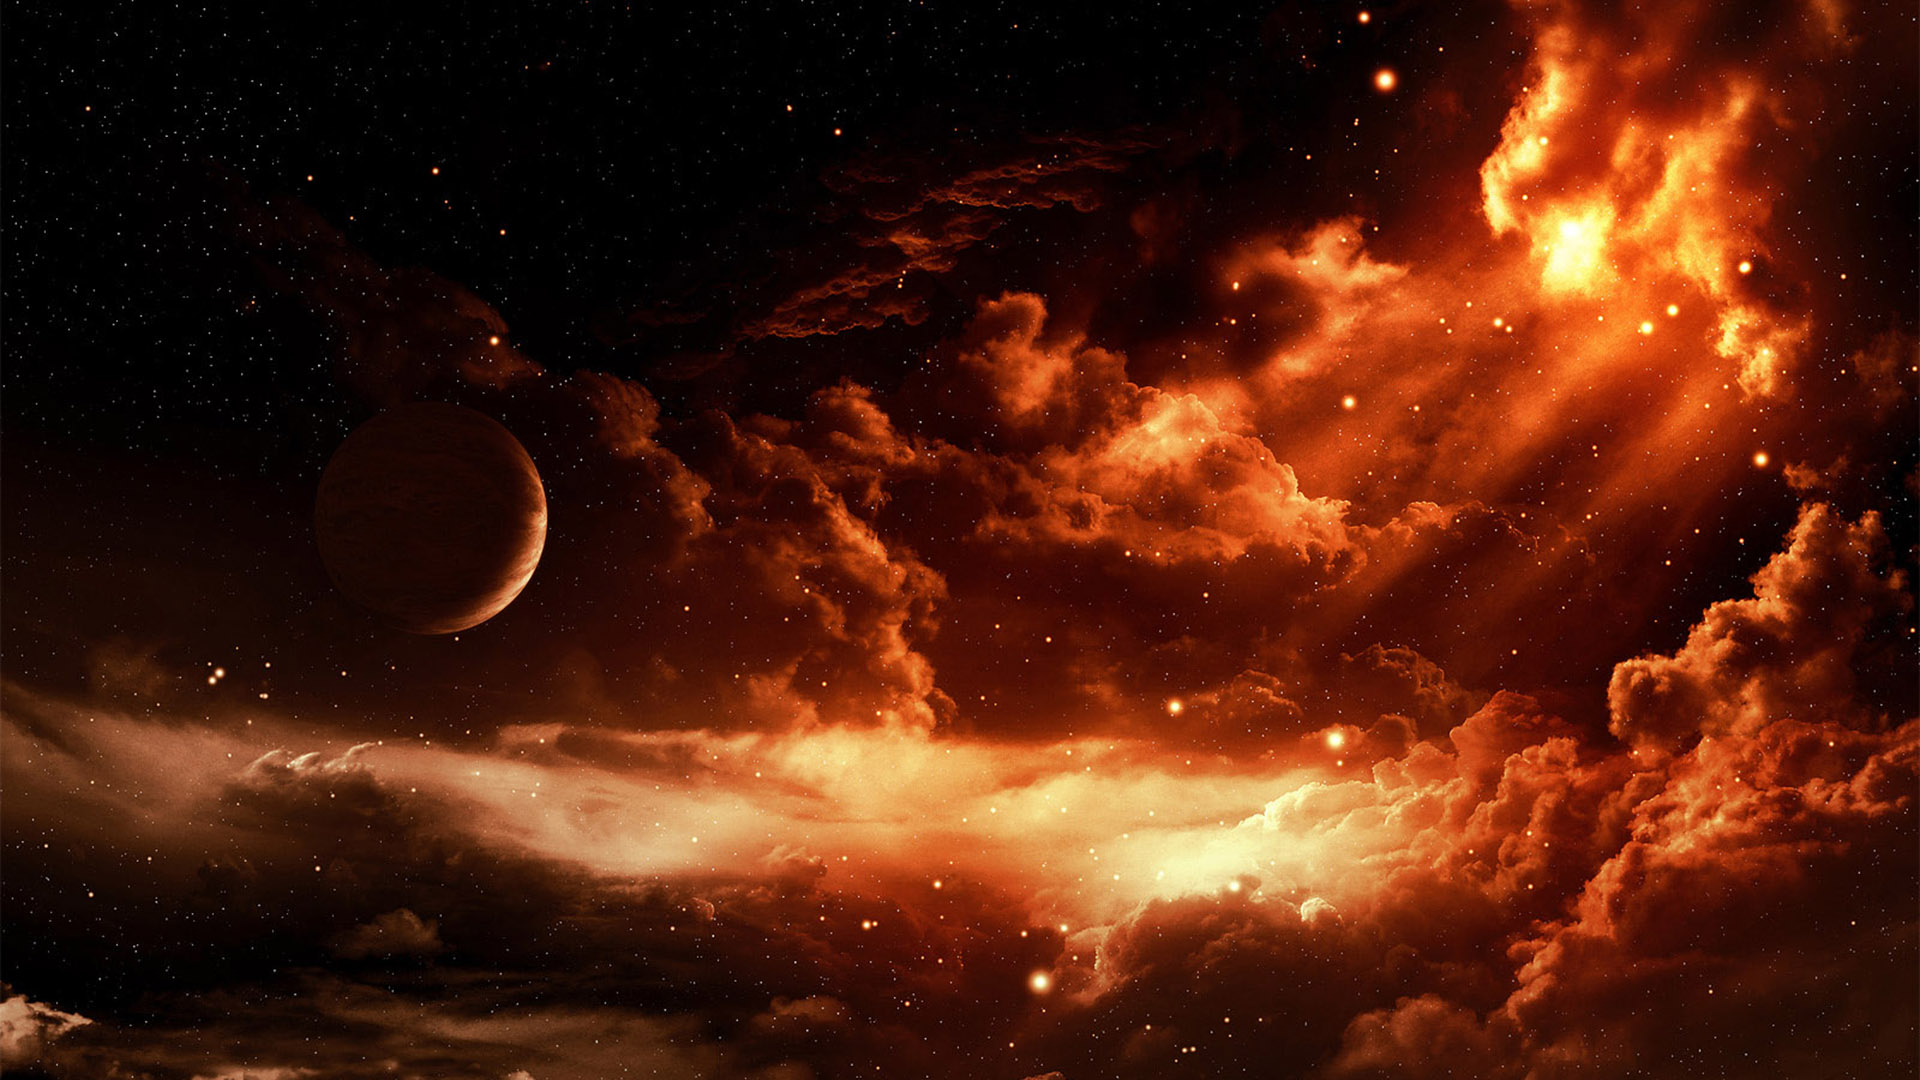 fire space hd wallpaper